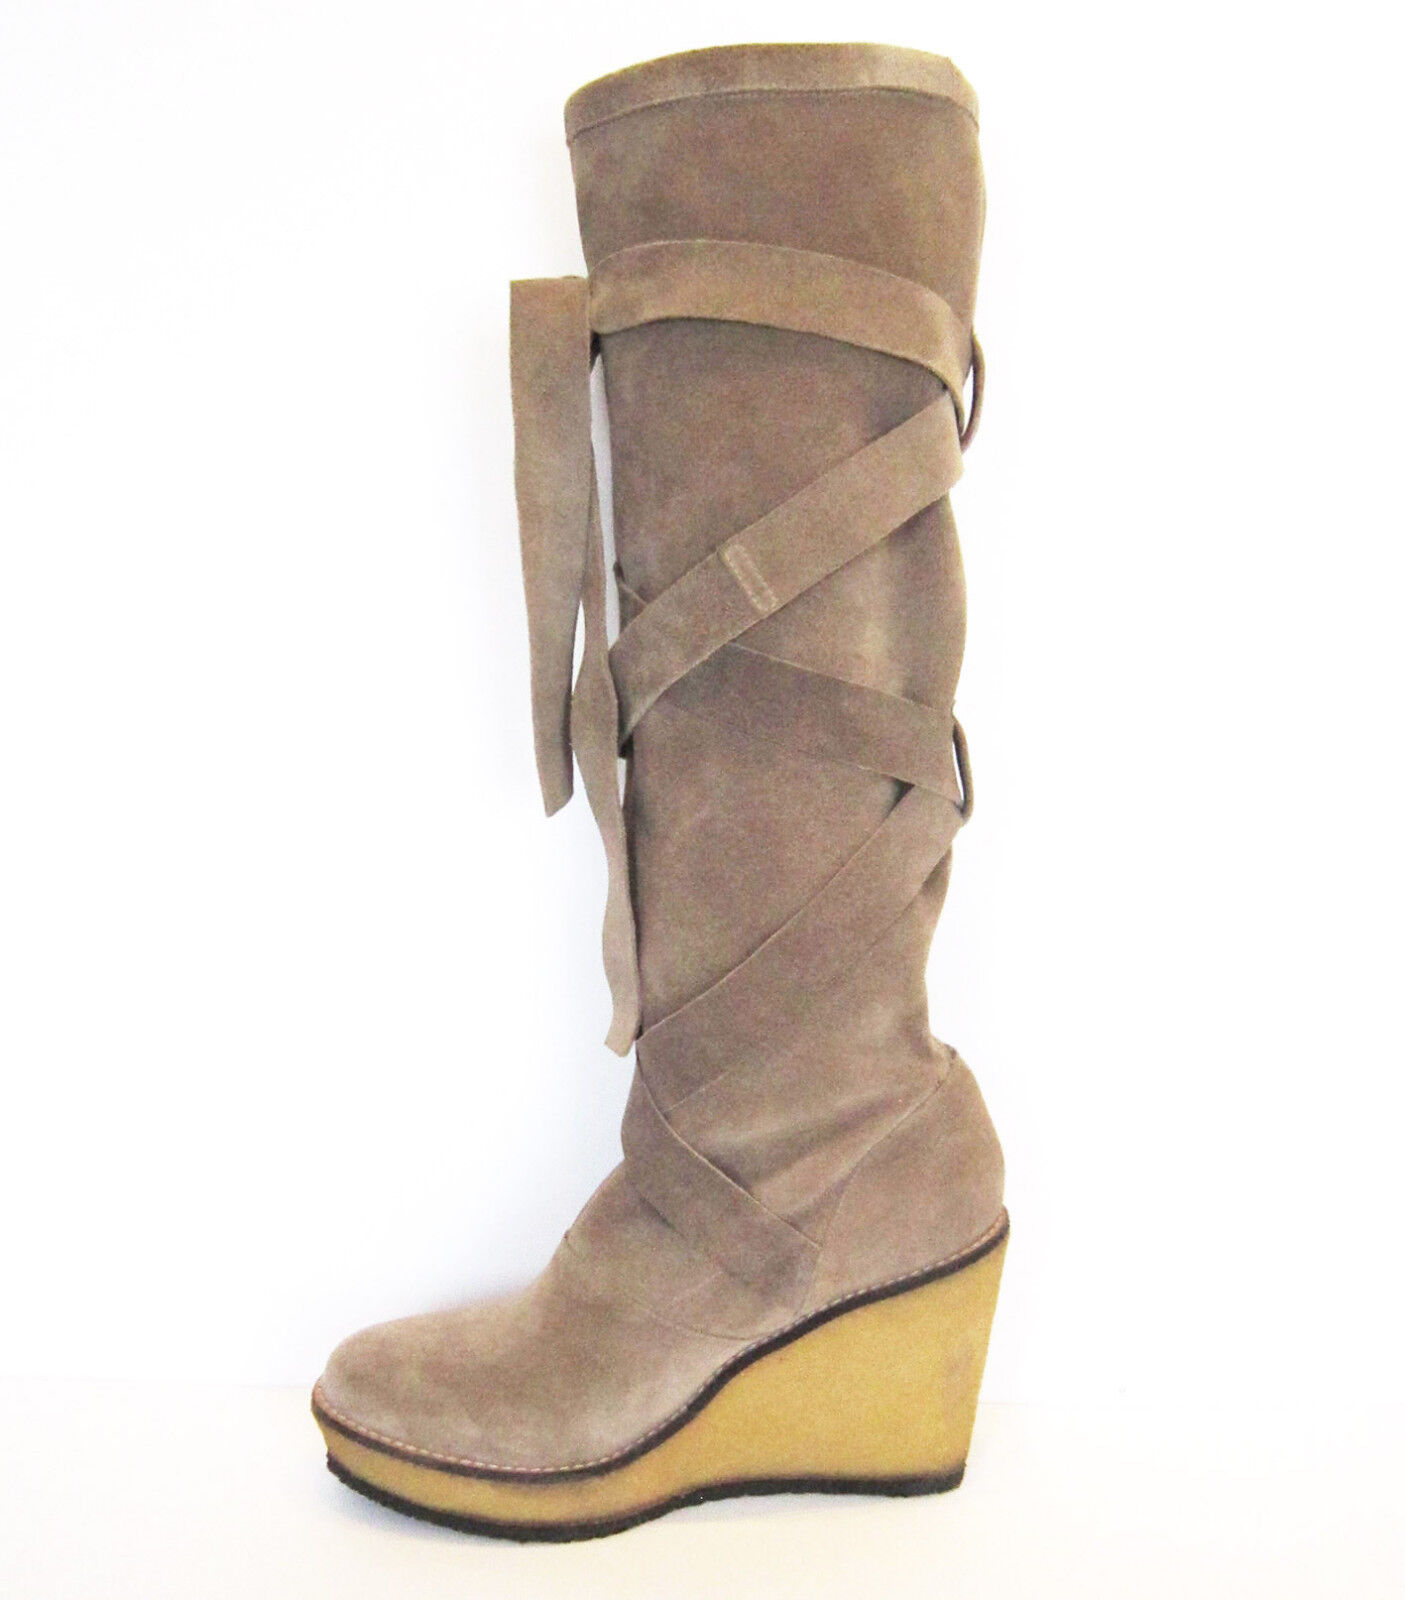 Robert Clergerie Suede Slouch Boots Boots Boots Size UK 6.5 1c4e46